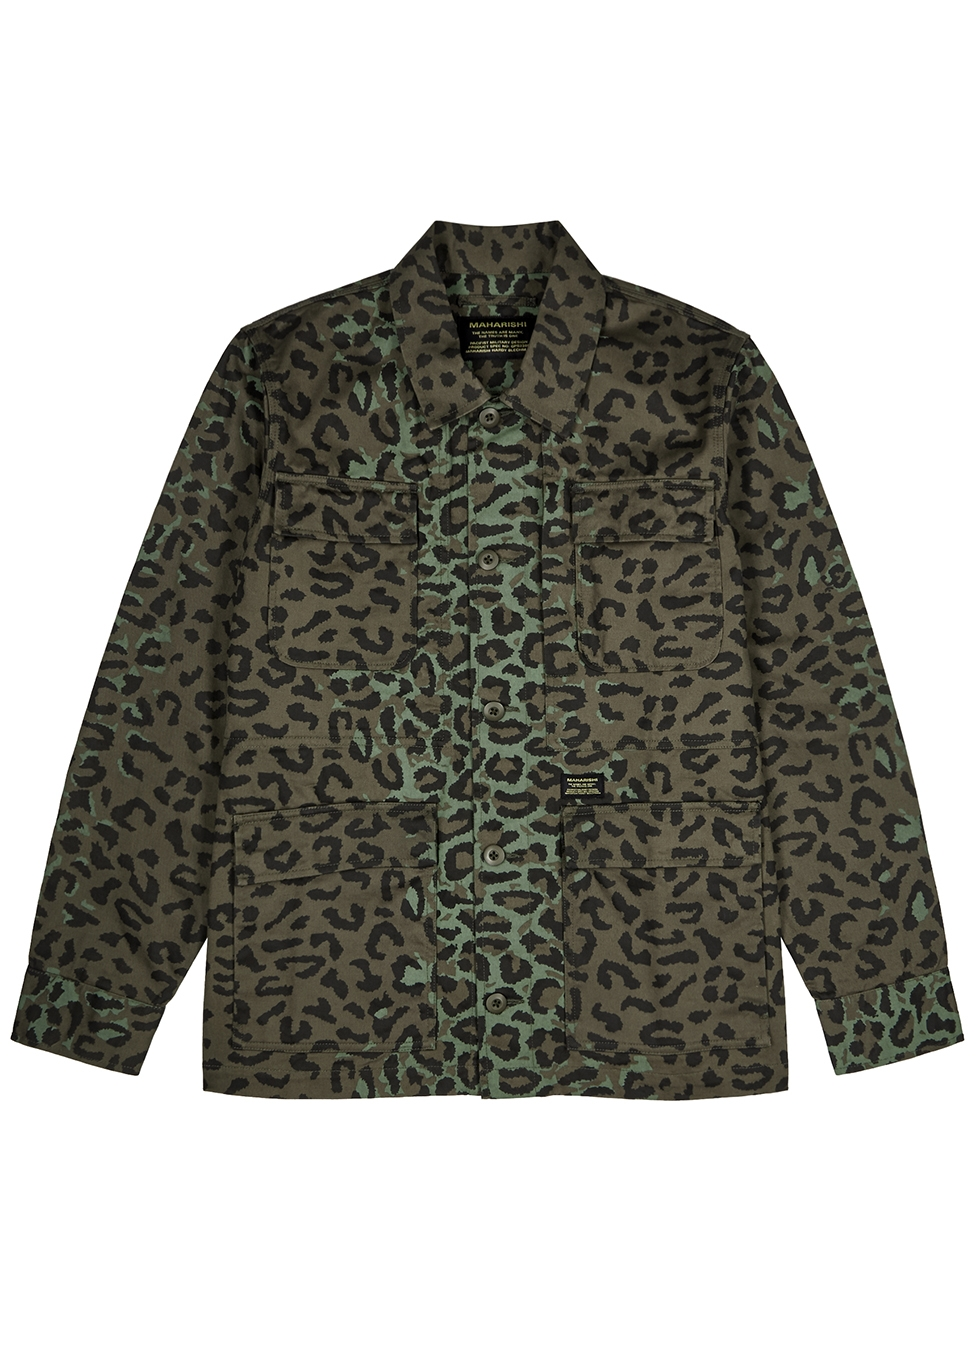 Army green leopard-print denim jacket - maharishi